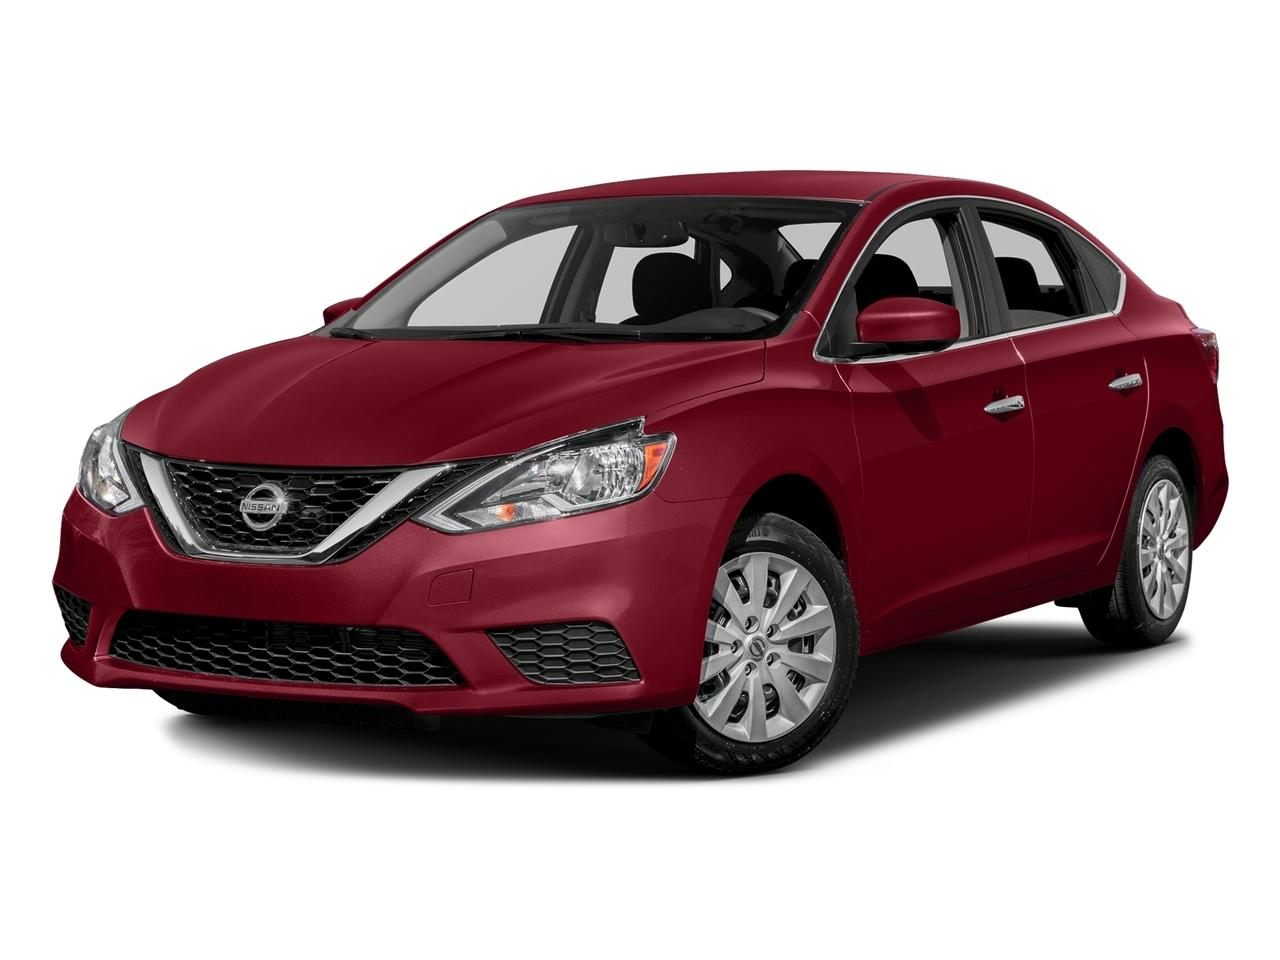 2017 Nissan Sentra Vehicle Photo in Streetsboro, OH 44241